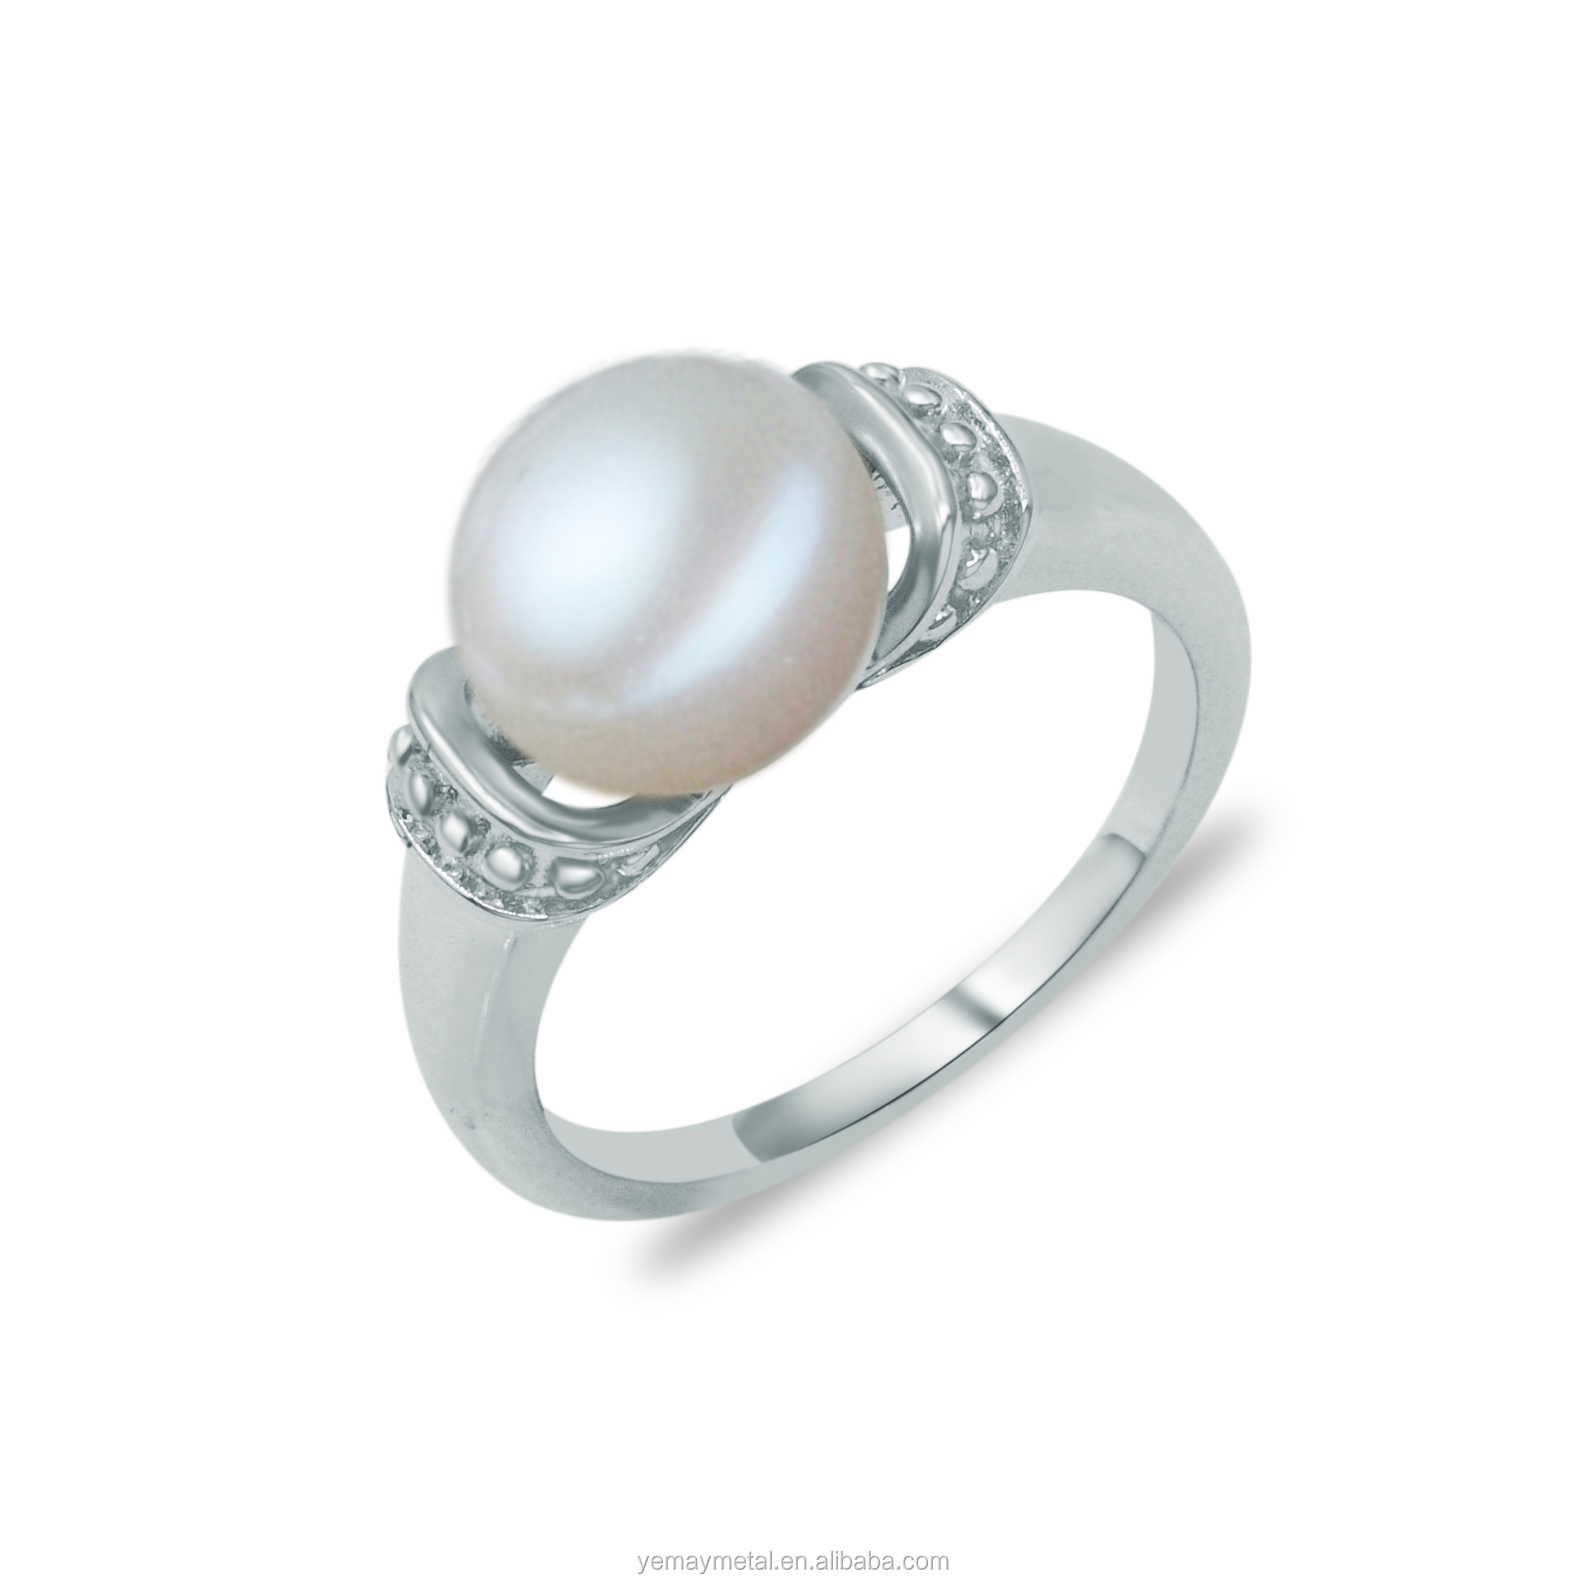 Pearl Ring Designs For Women Wholesale, Ring Design Suppliers ...